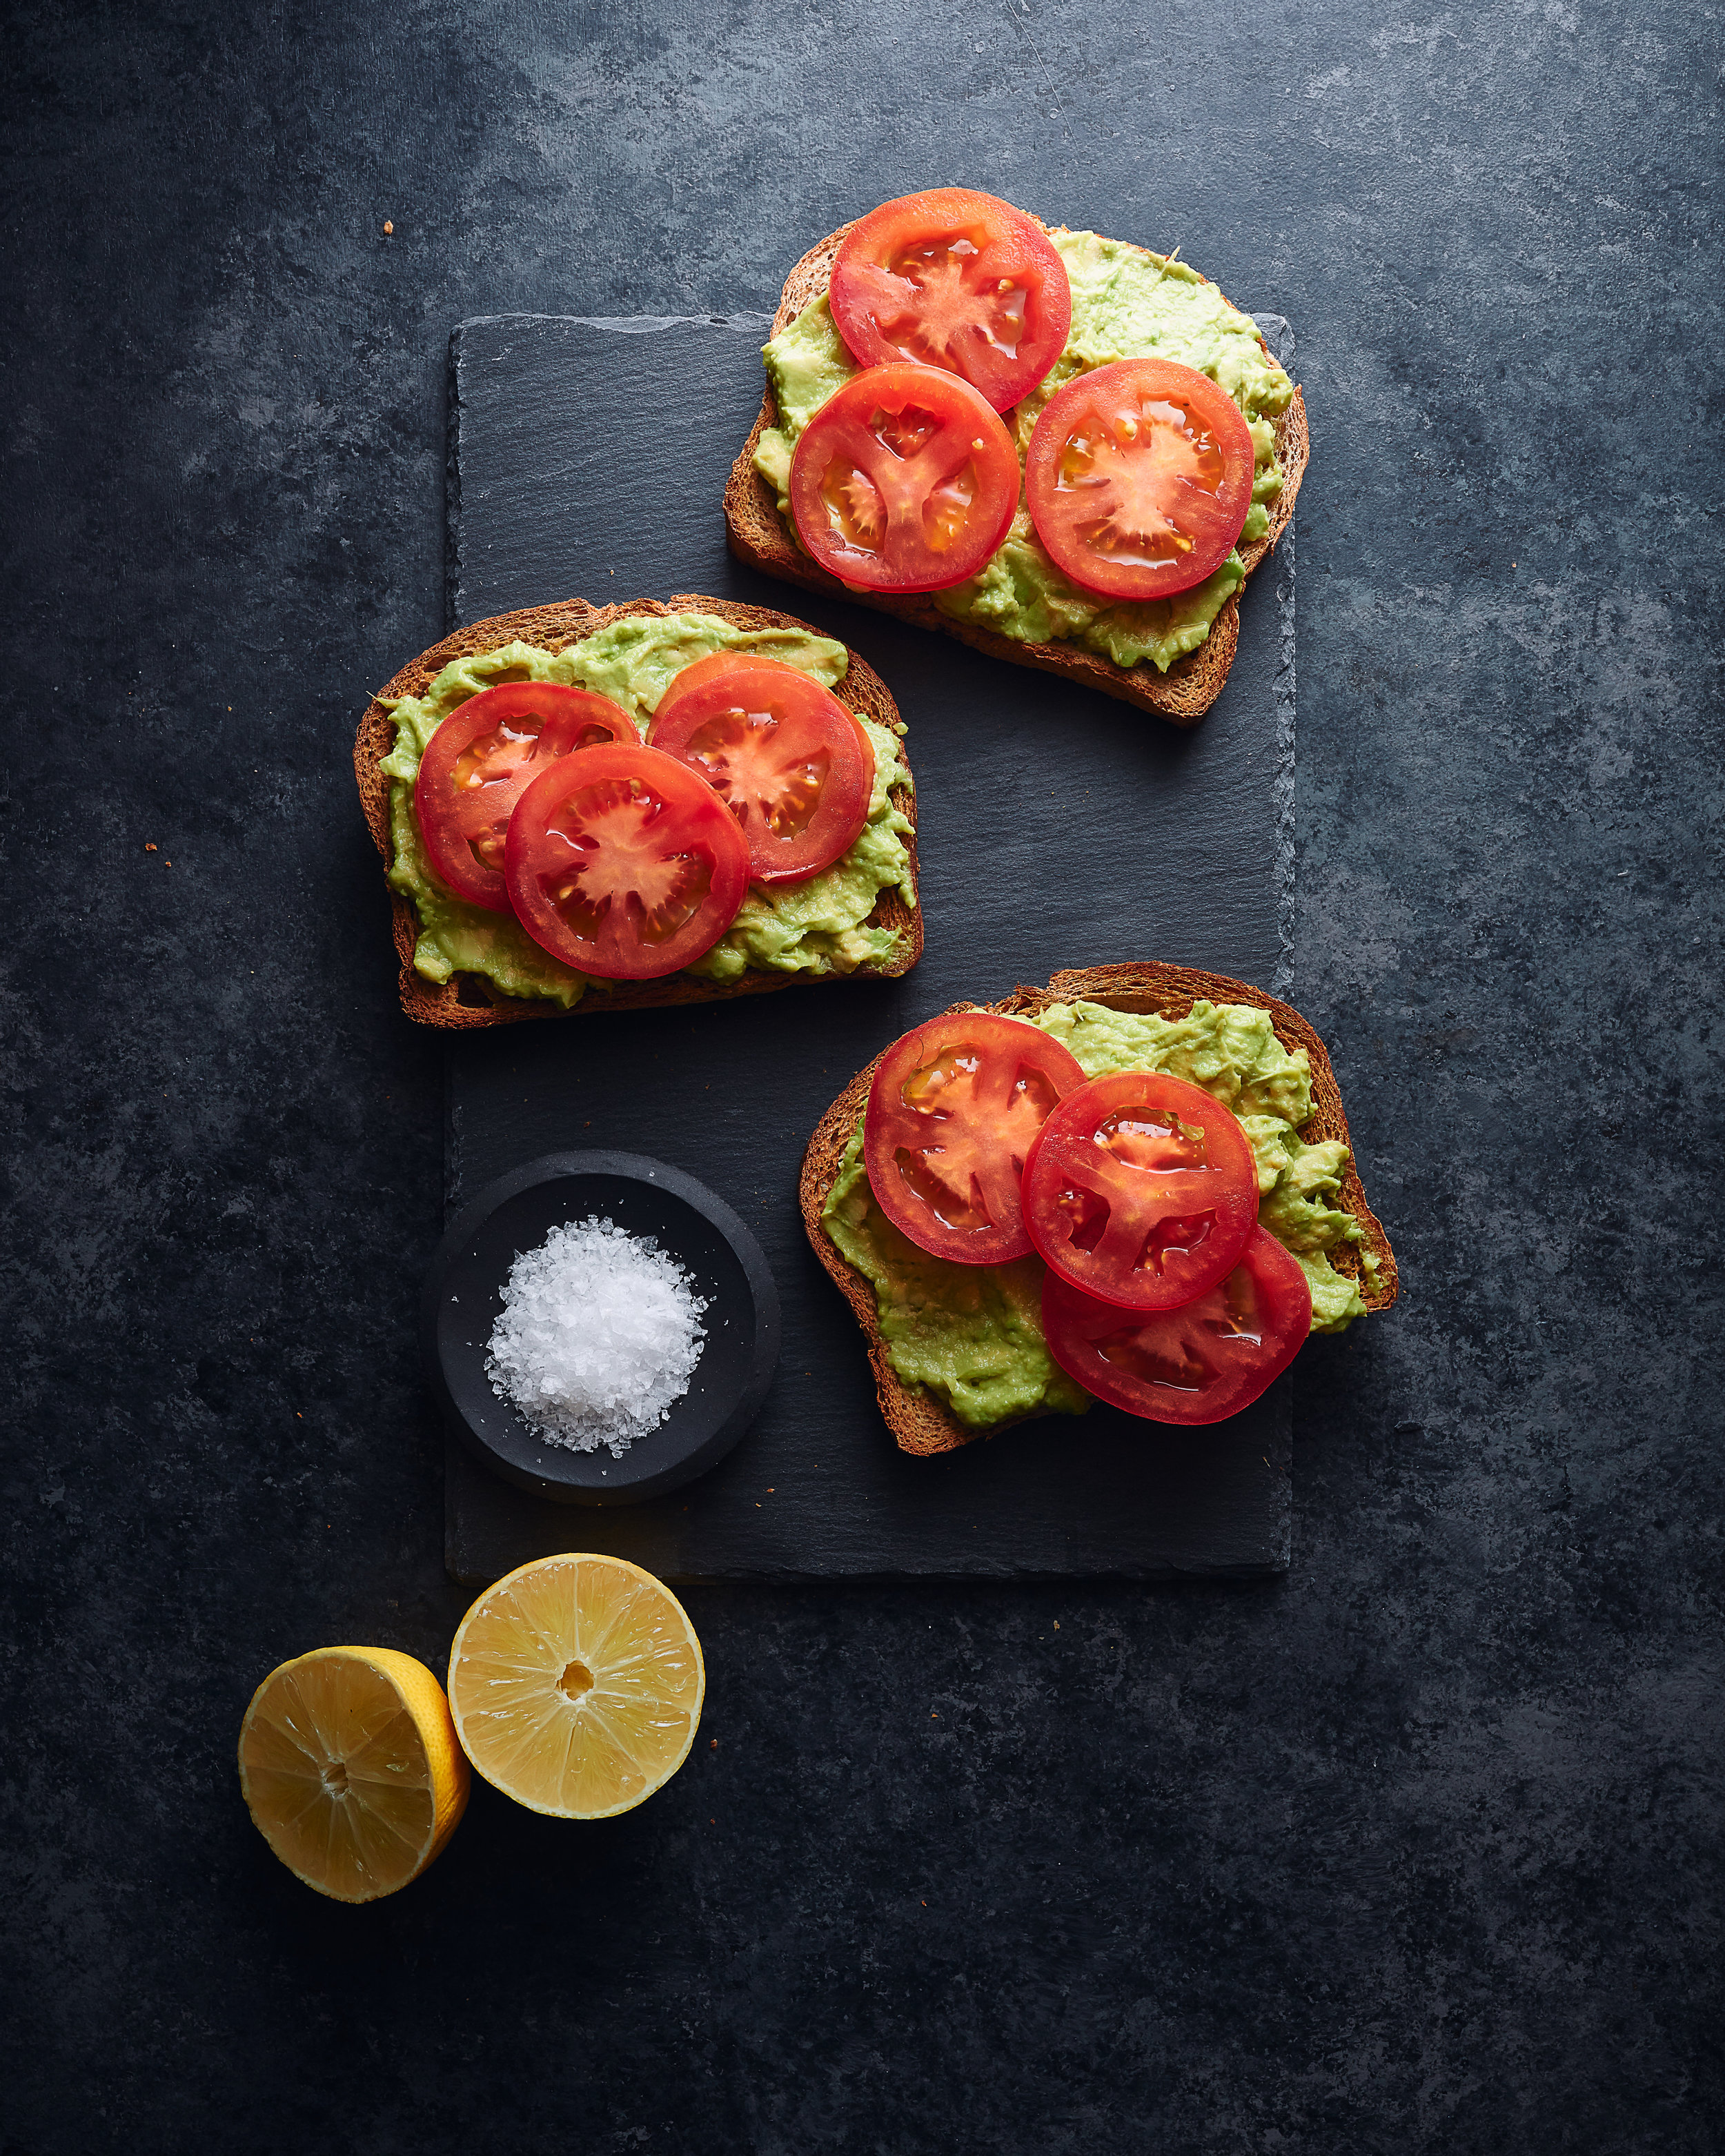 Avocado-Toast-Los-Angeles-Food-Photographer-Brandon-Figueroa 2.jpg